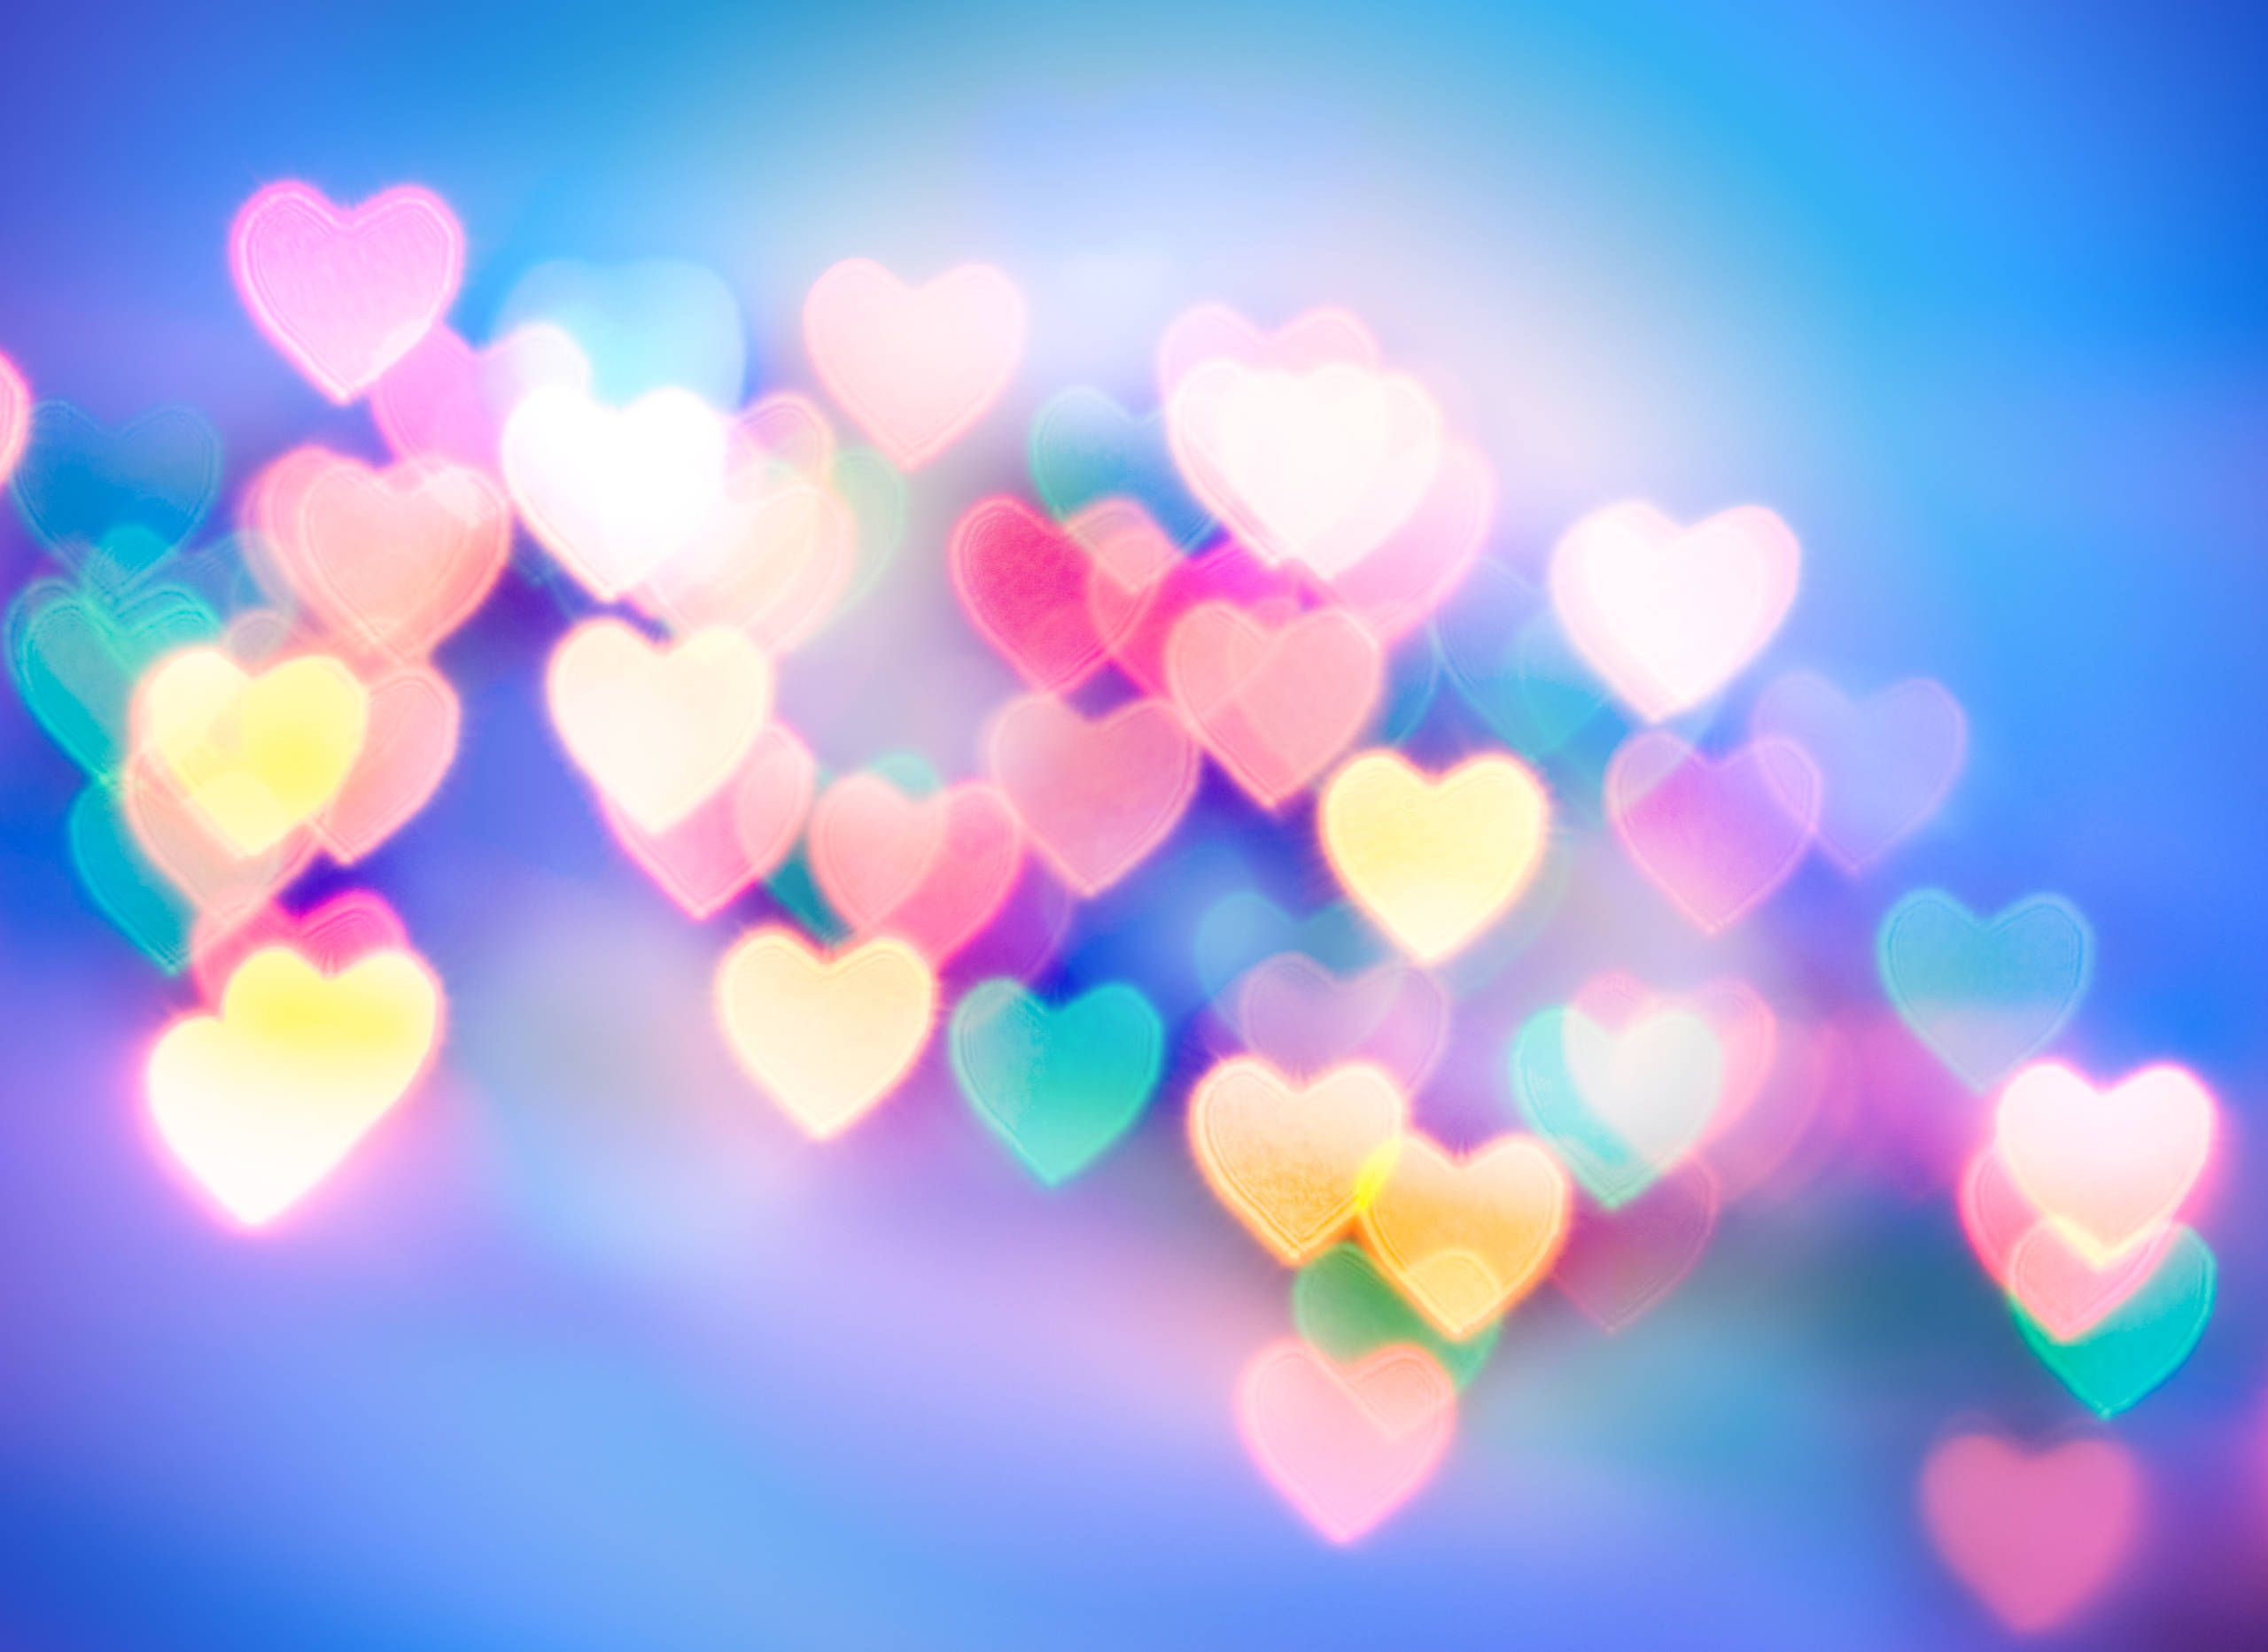 Background of multicoloured abstract hearts